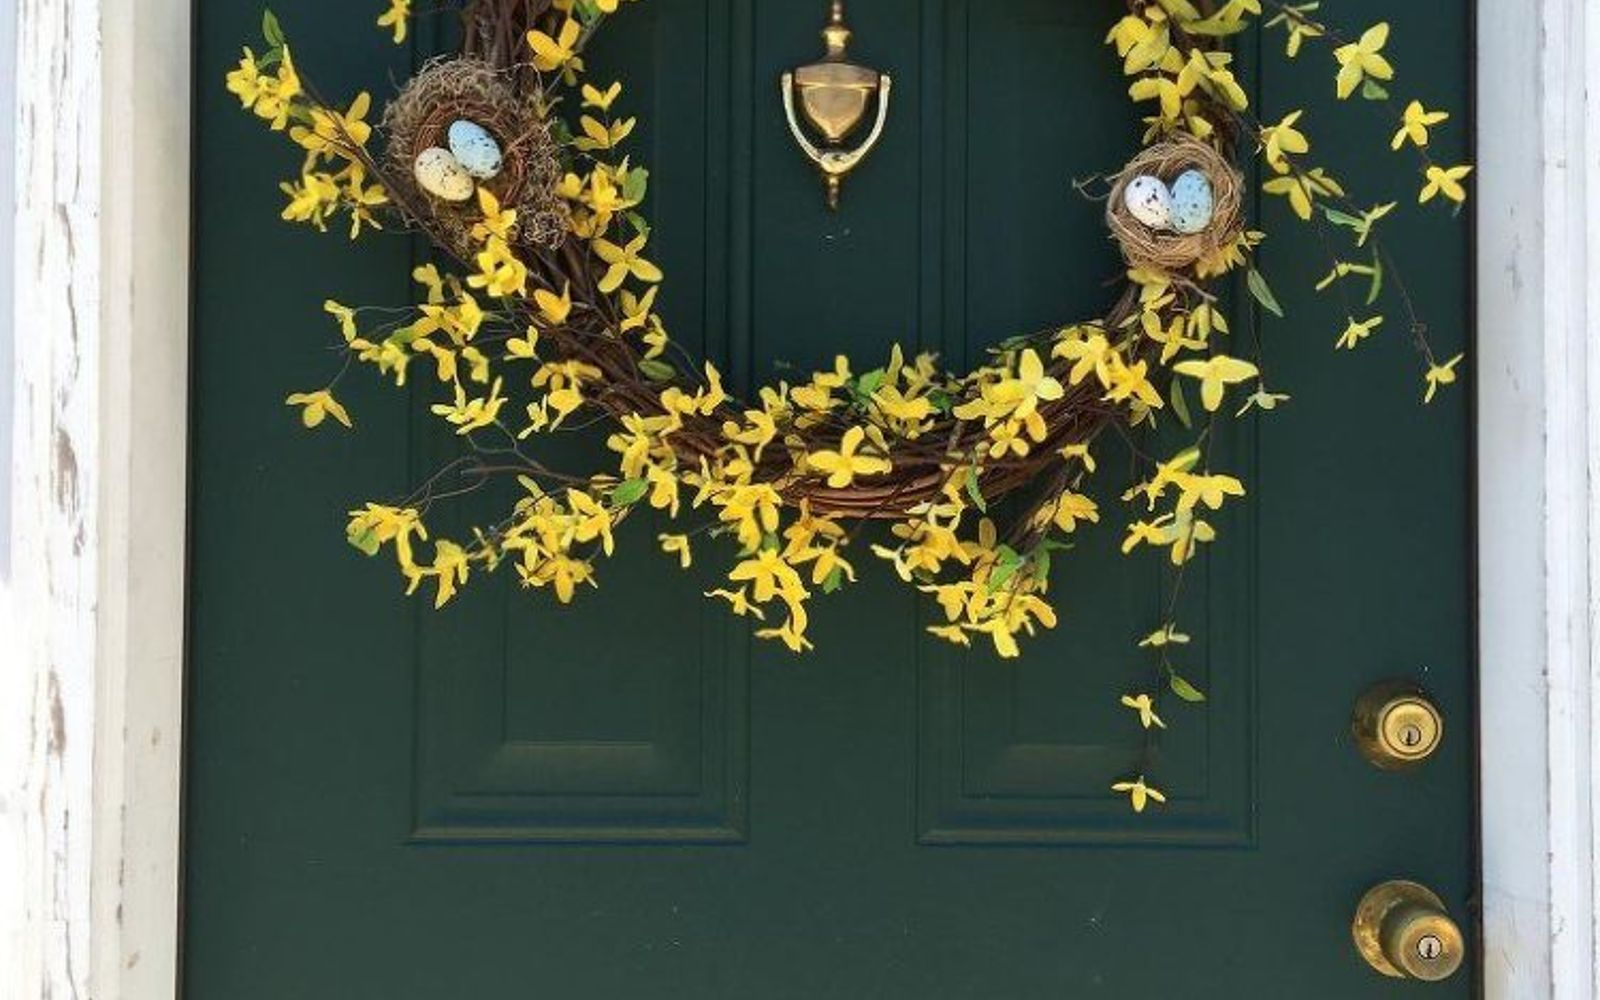 s 31 gorgeous spring wreaths that will make your neighbors smile, crafts, seasonal holiday decor, wreaths, Choose buds that will stand out on your door